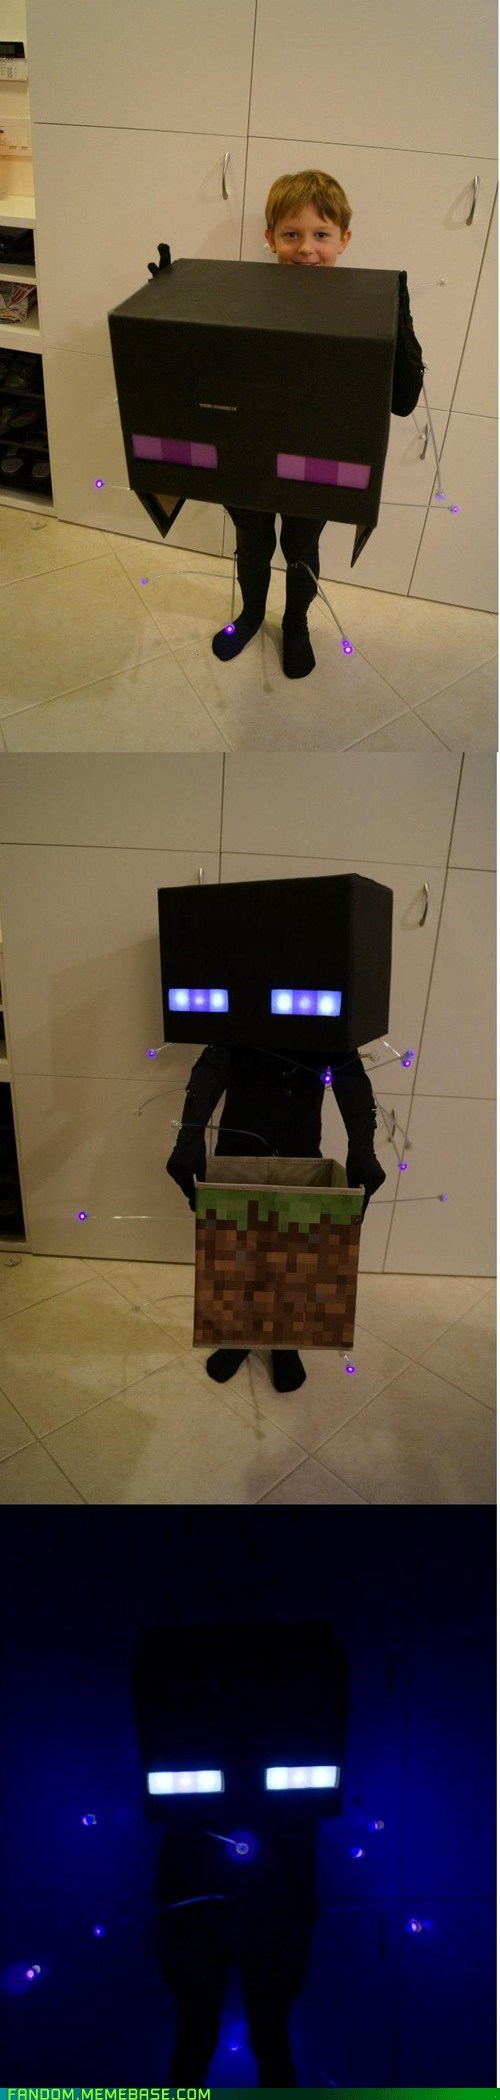 enderman,cosplay,kids,cute,minecraft,video games